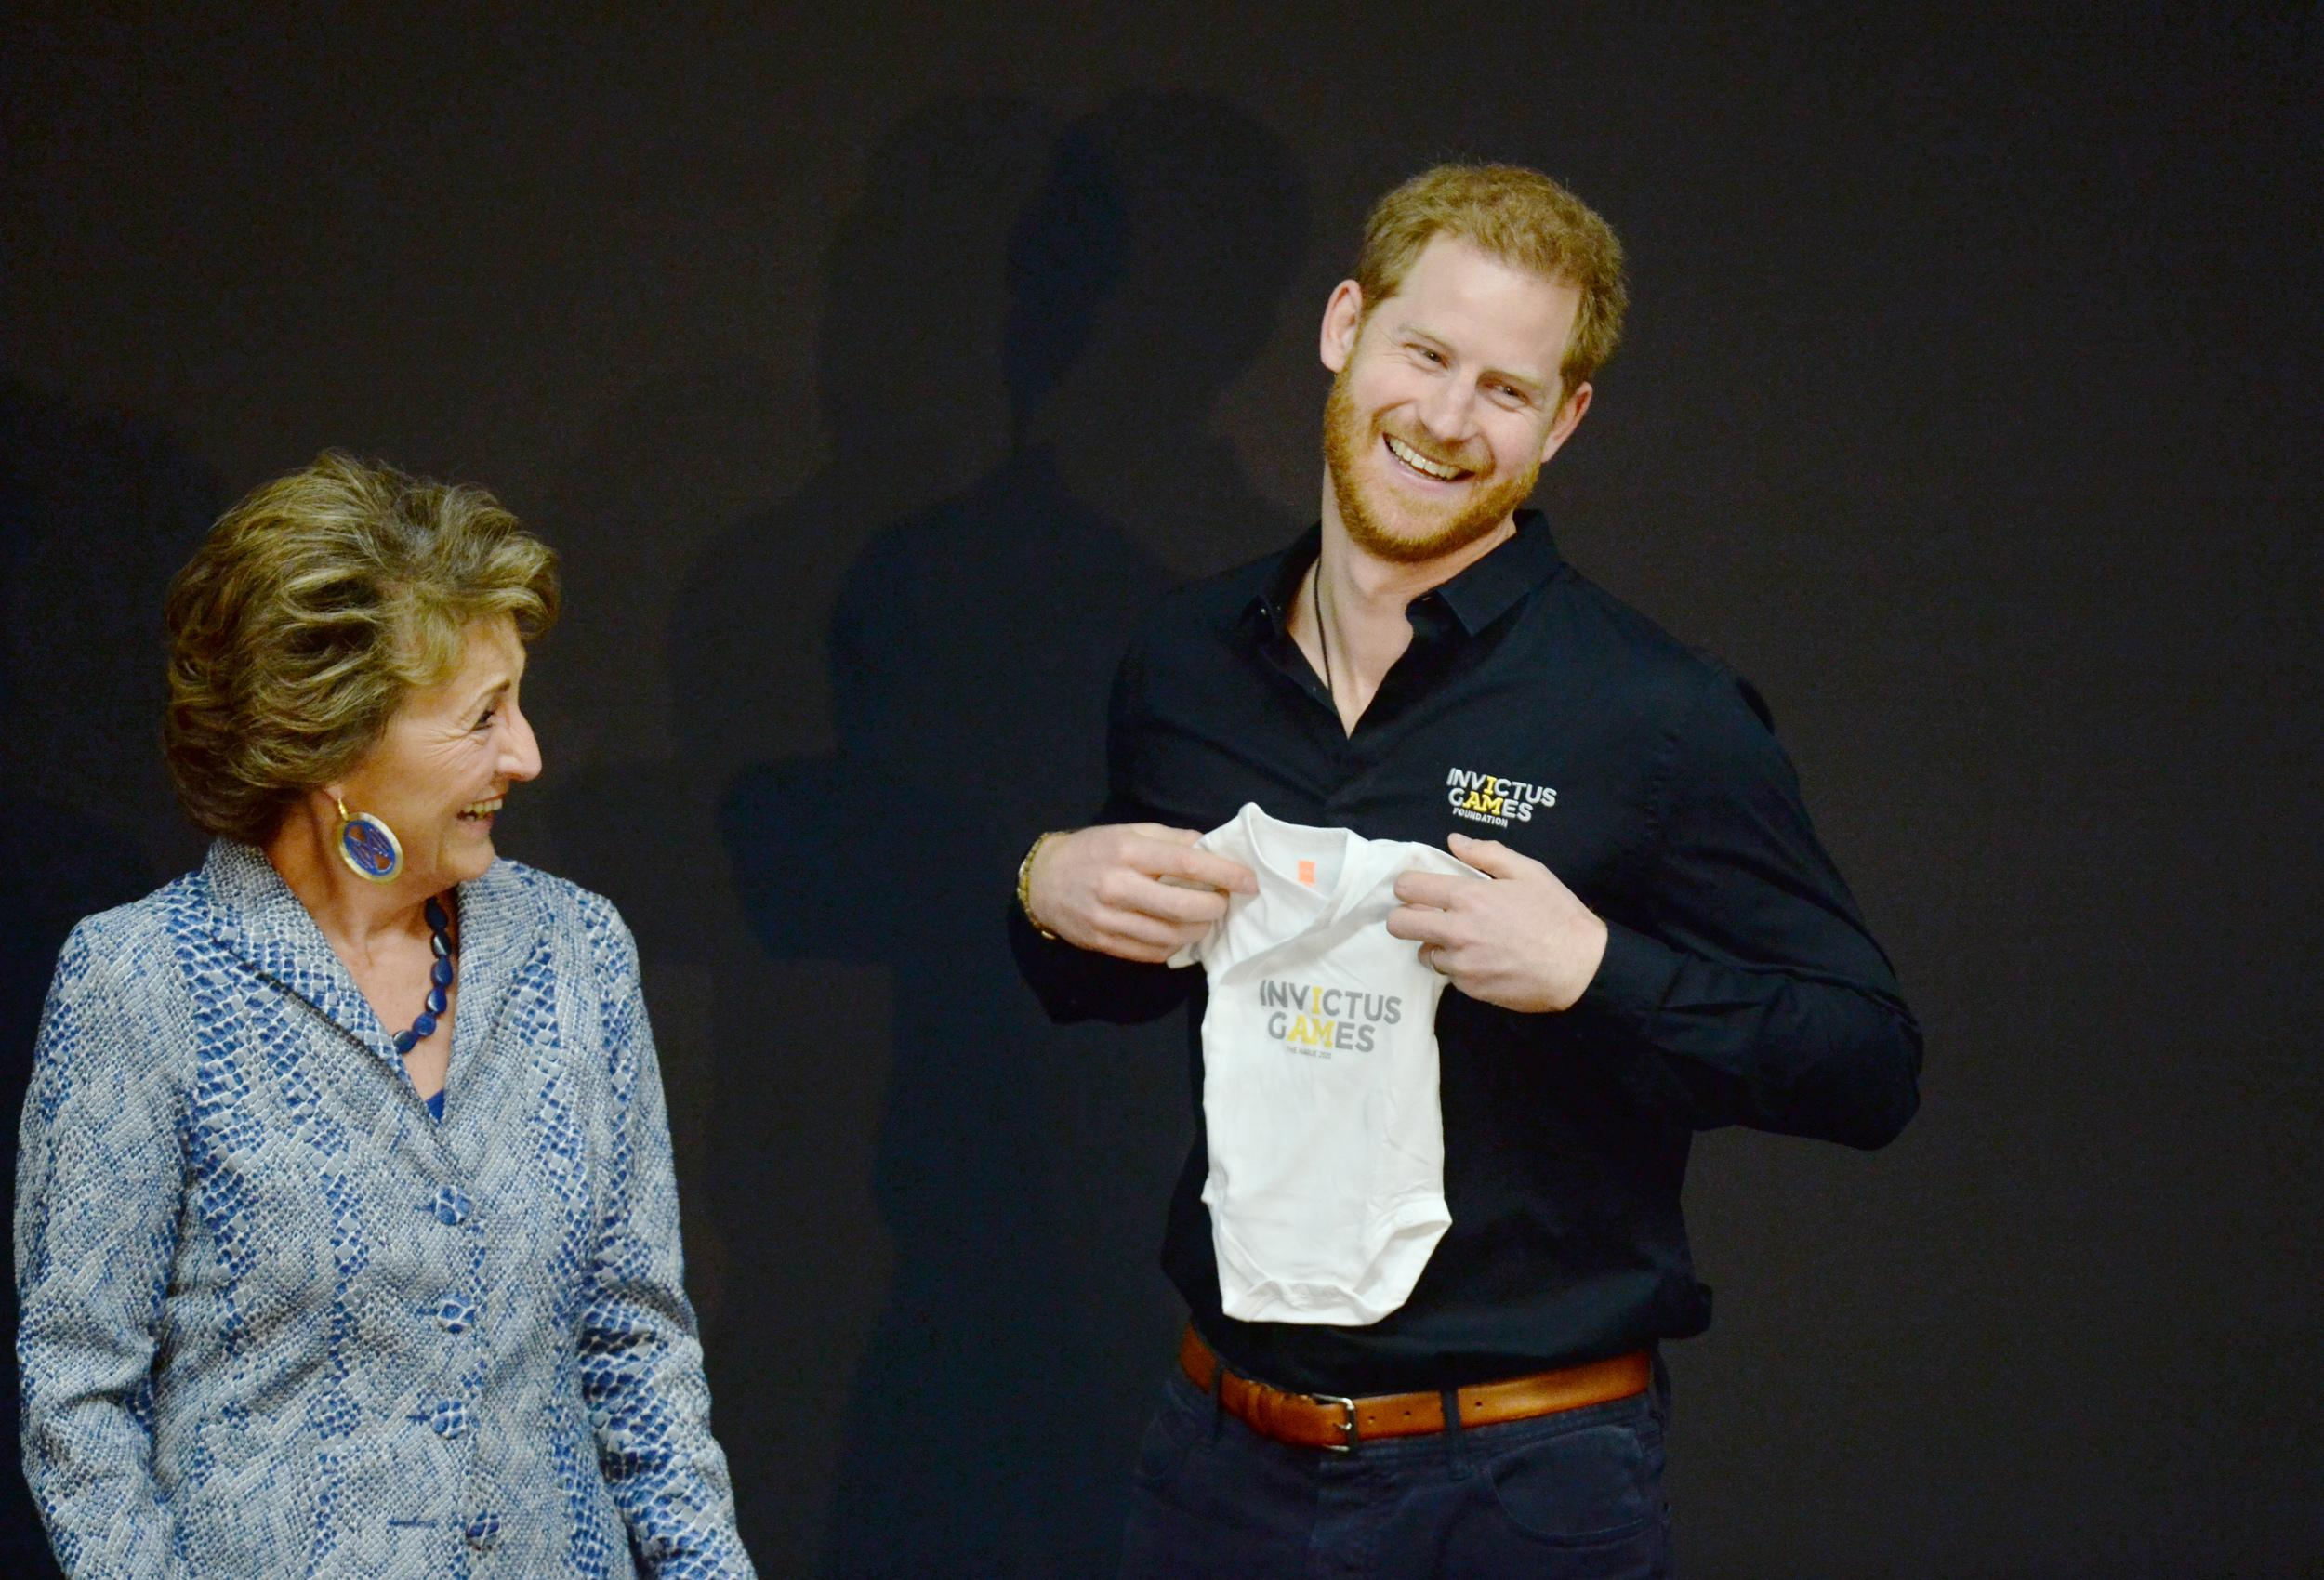 The Duke of Sussex receives a gift for his new son, Archie, from Princess Margriet of the Netherlands at a sports training session at Sportcampus Zuiderpark during a visit to The Hague as part of a programme of events to mark the official launch of the Invictus Games, Netherlands. (Photo by Kirsty O'Connor/PA Images via Getty Images)